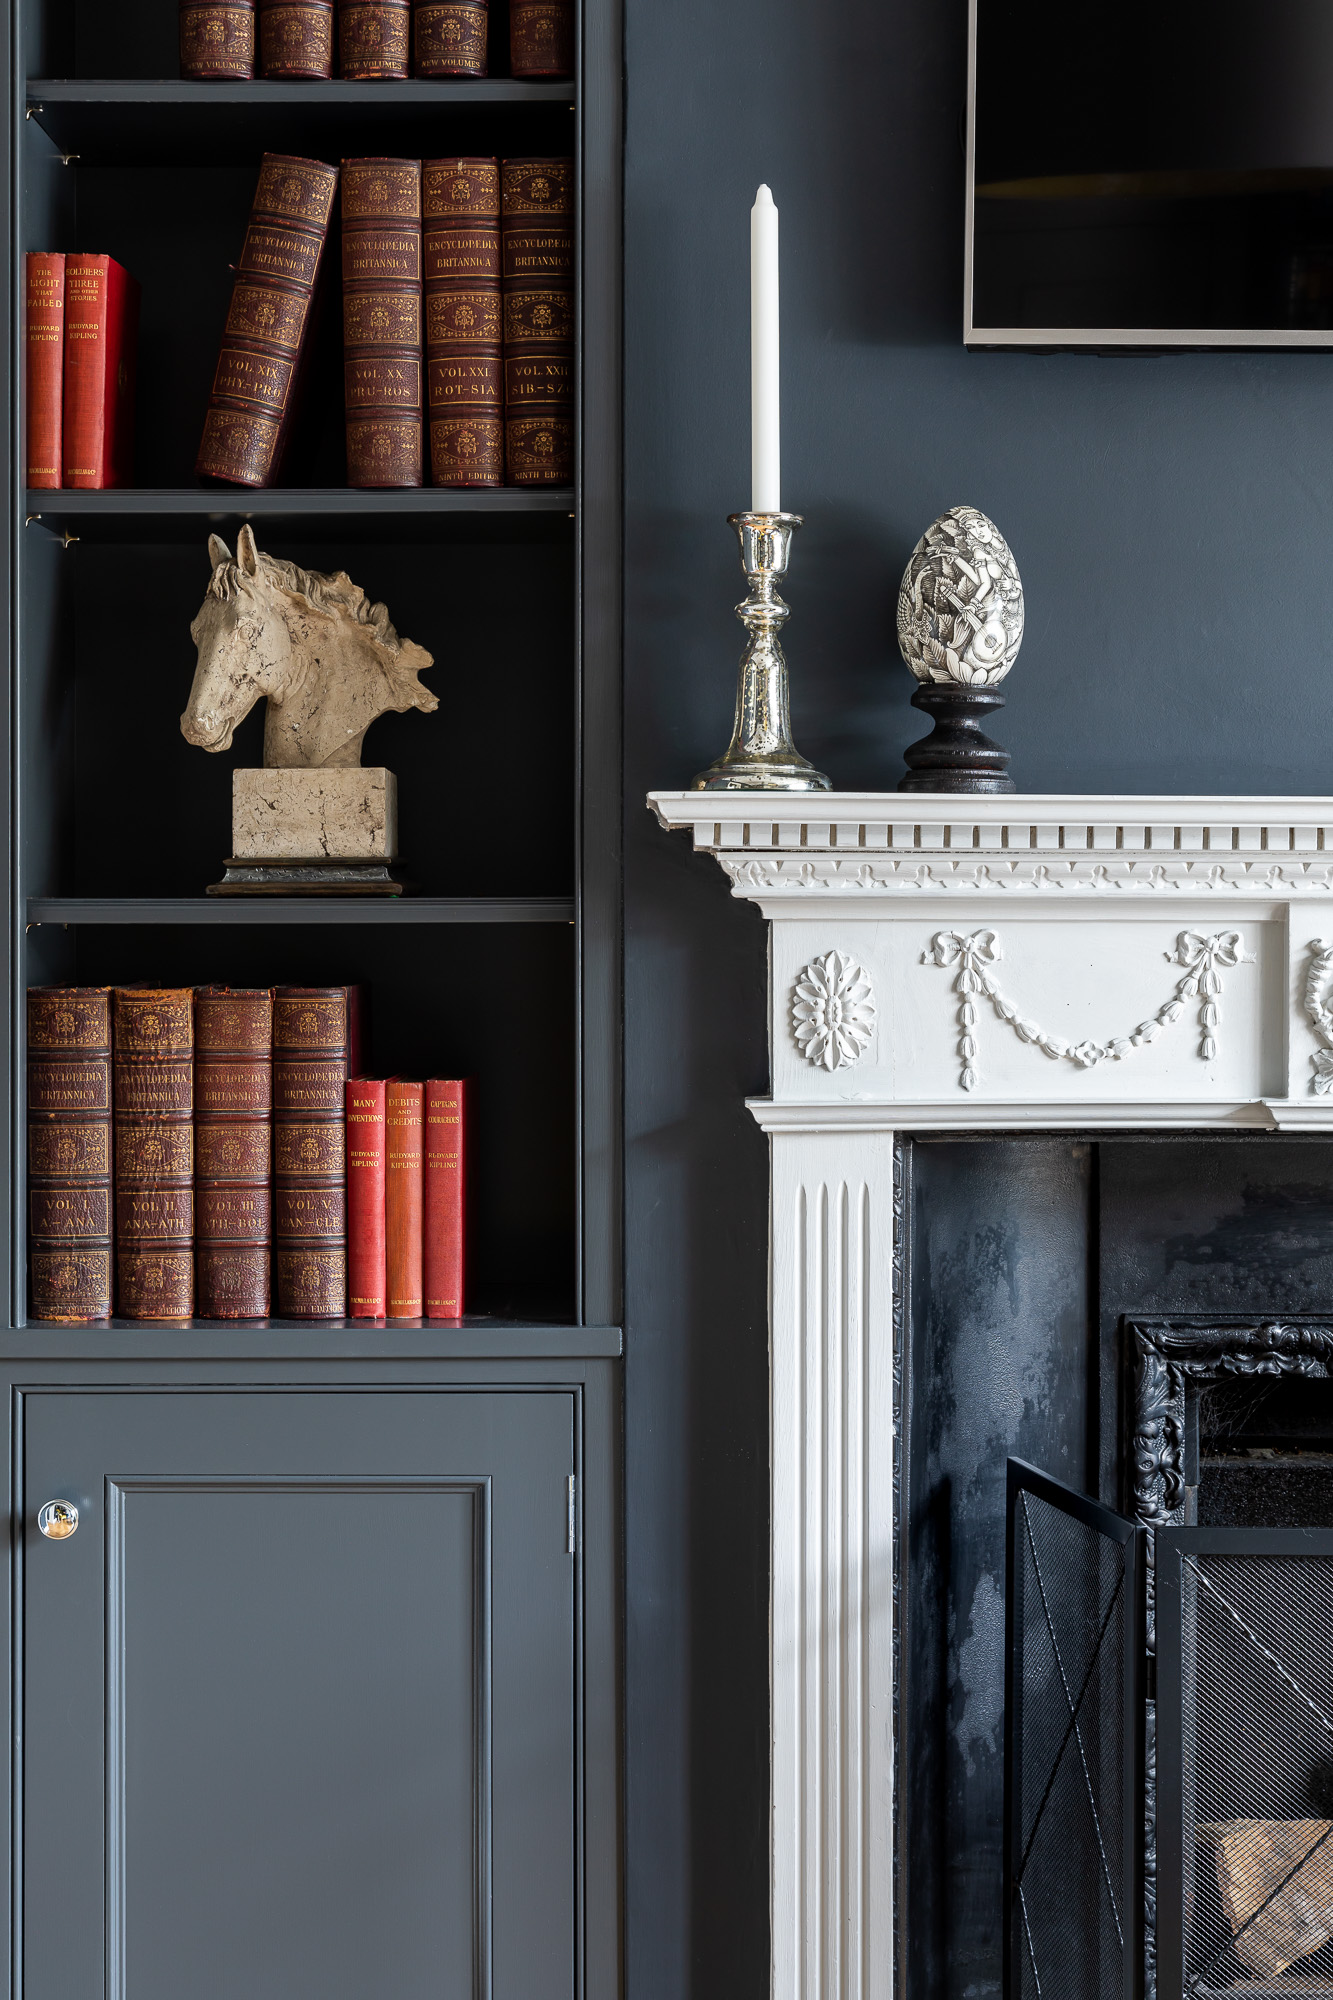 jonathan bond, interior photographer, ornate fireplace & bookcase, harlow